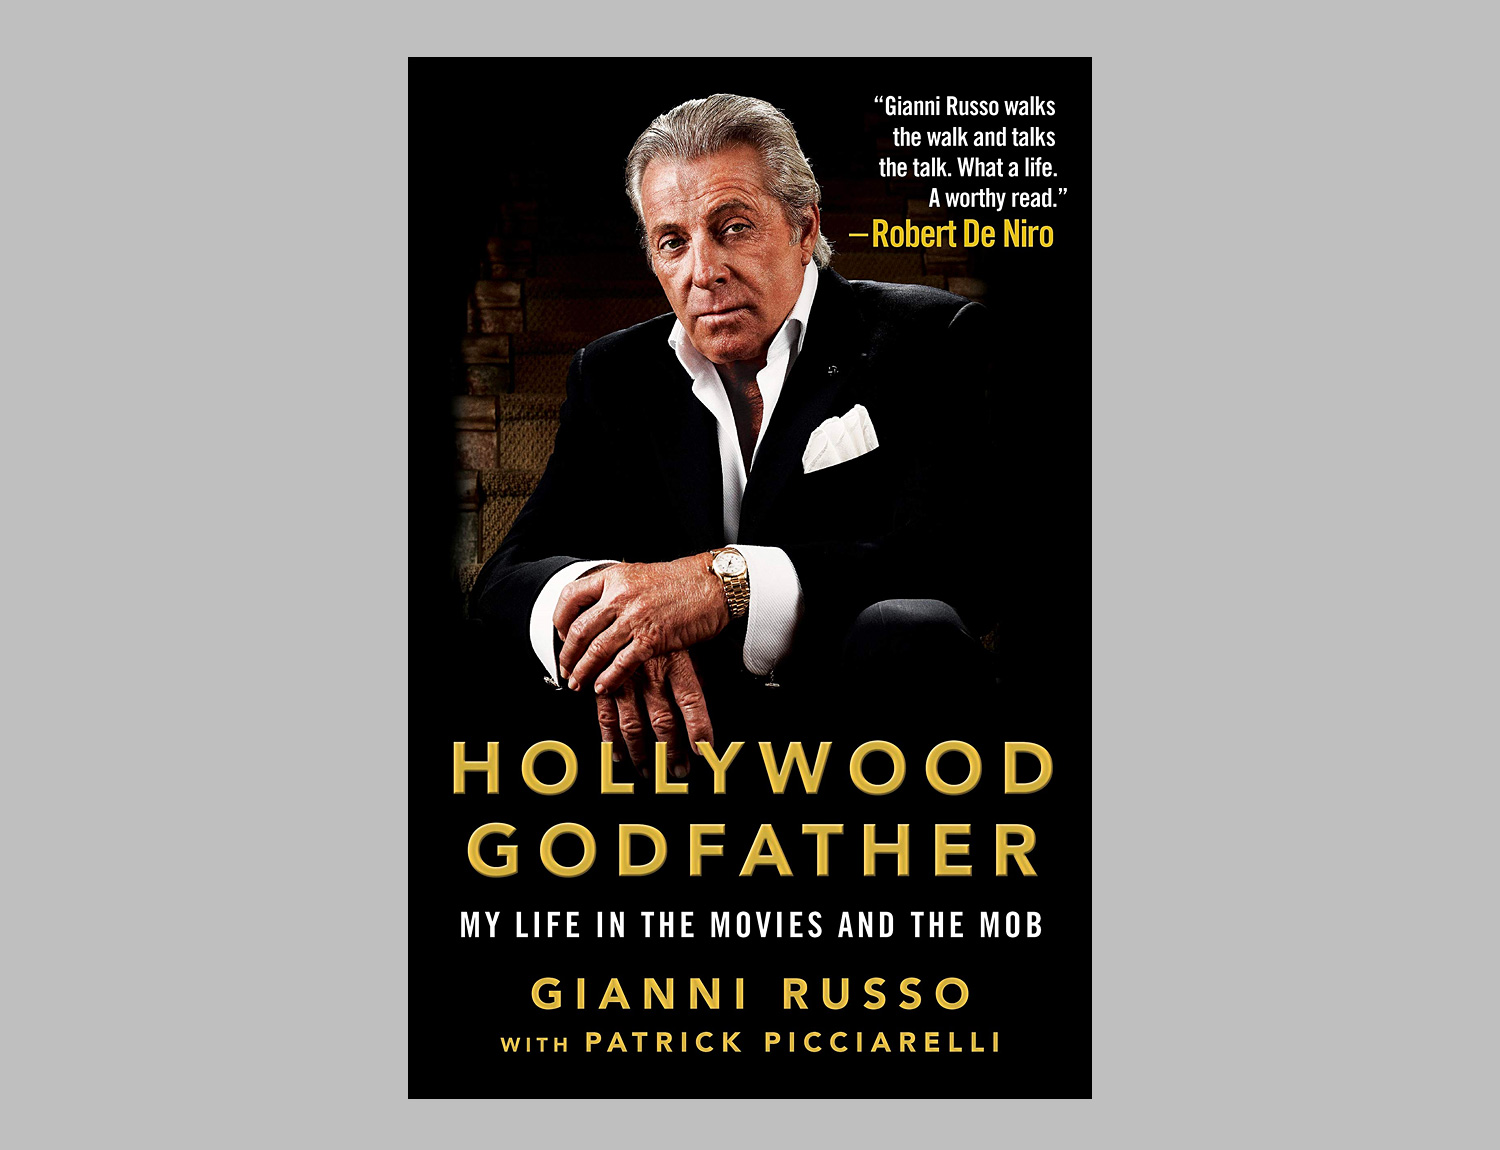 Hollywood Godfather: My Life in the Movies and the Mob at werd.com